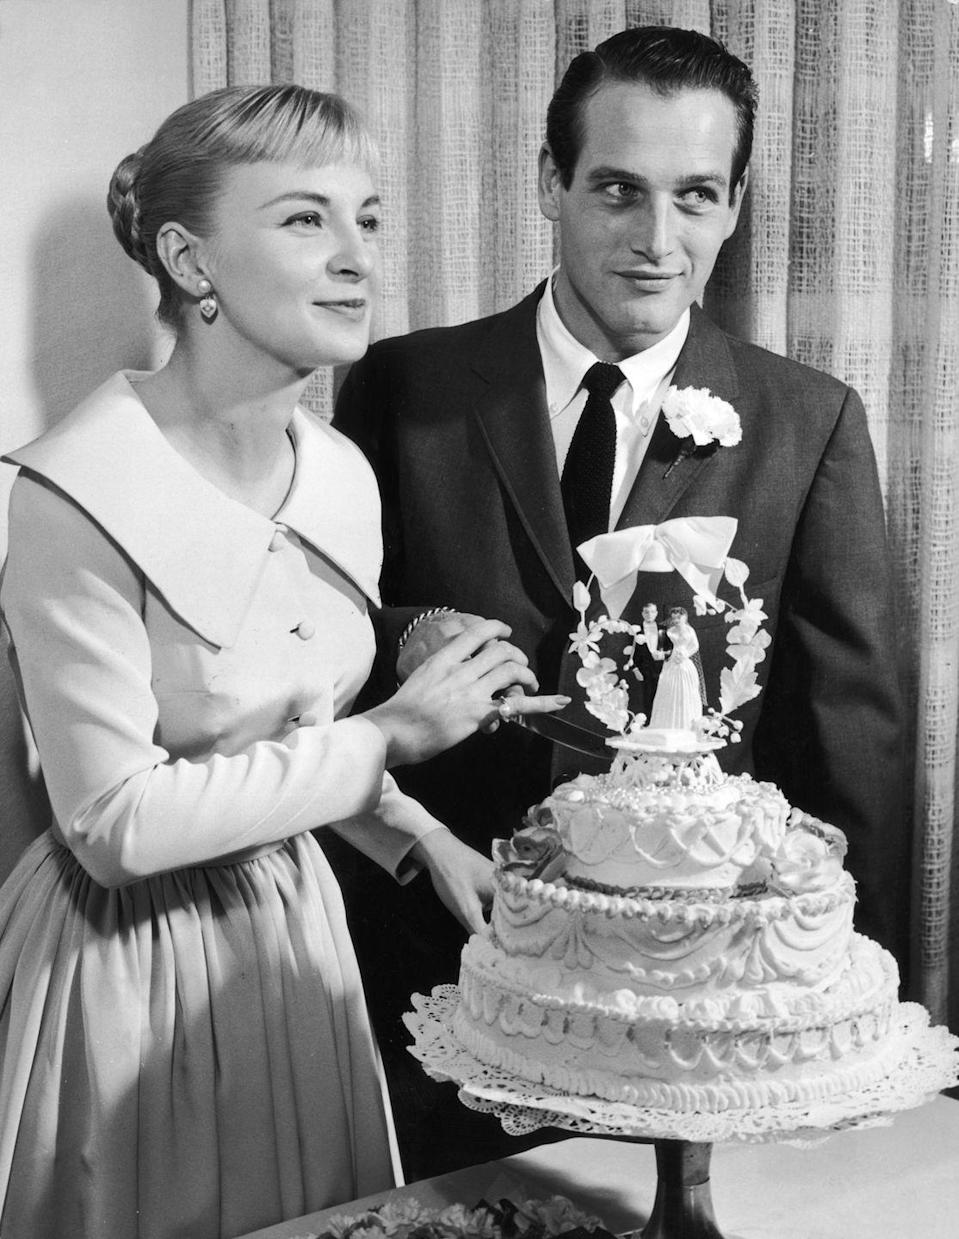 <p>After ending a previous 10-year marriage, Paul Newman, then 33, tied the knot with actress Joanne Woodward, 27, on January 29 in Las Vegas, Nevada. A romance between the two began when they costarred in <em>The Long, Hot Summer</em>. They remained together until he died in 2008.</p>